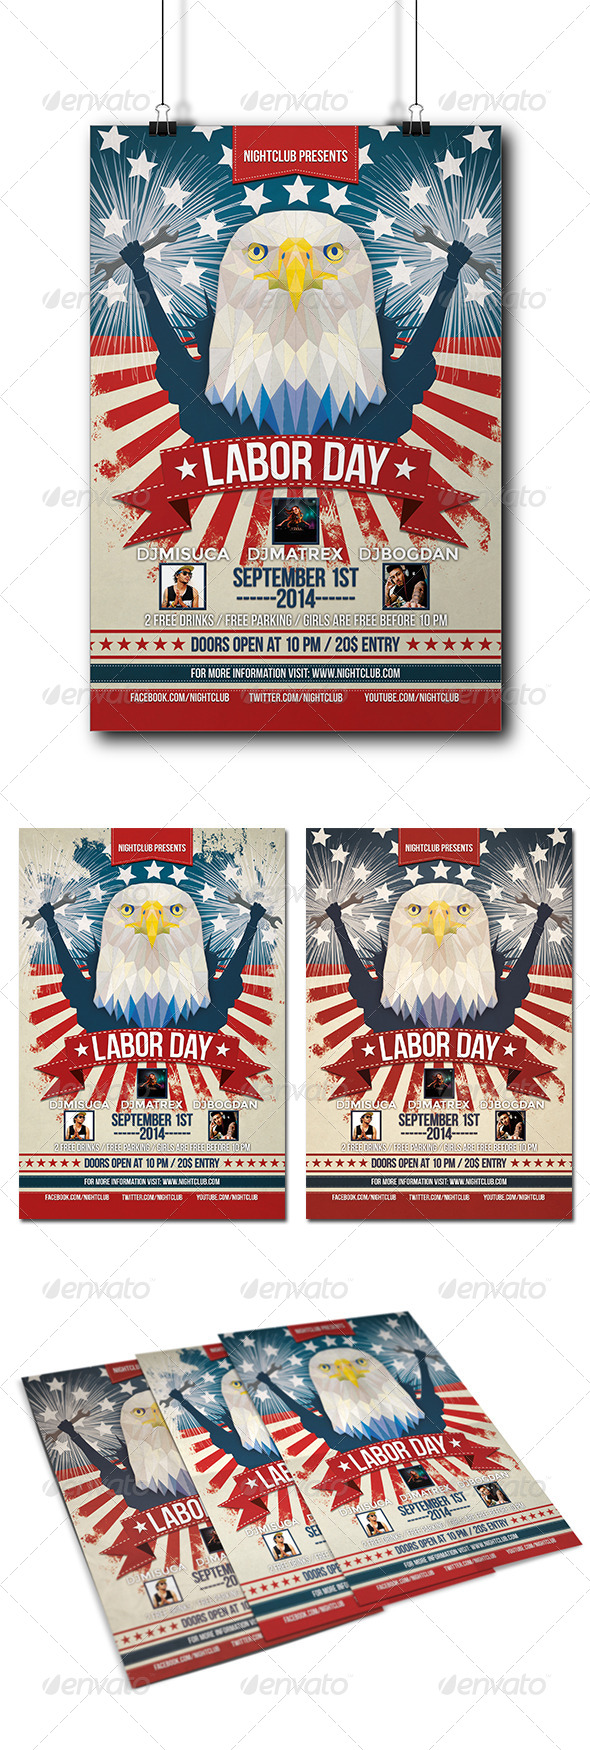 GraphicRiver Labor Day Party Flyer 8539123